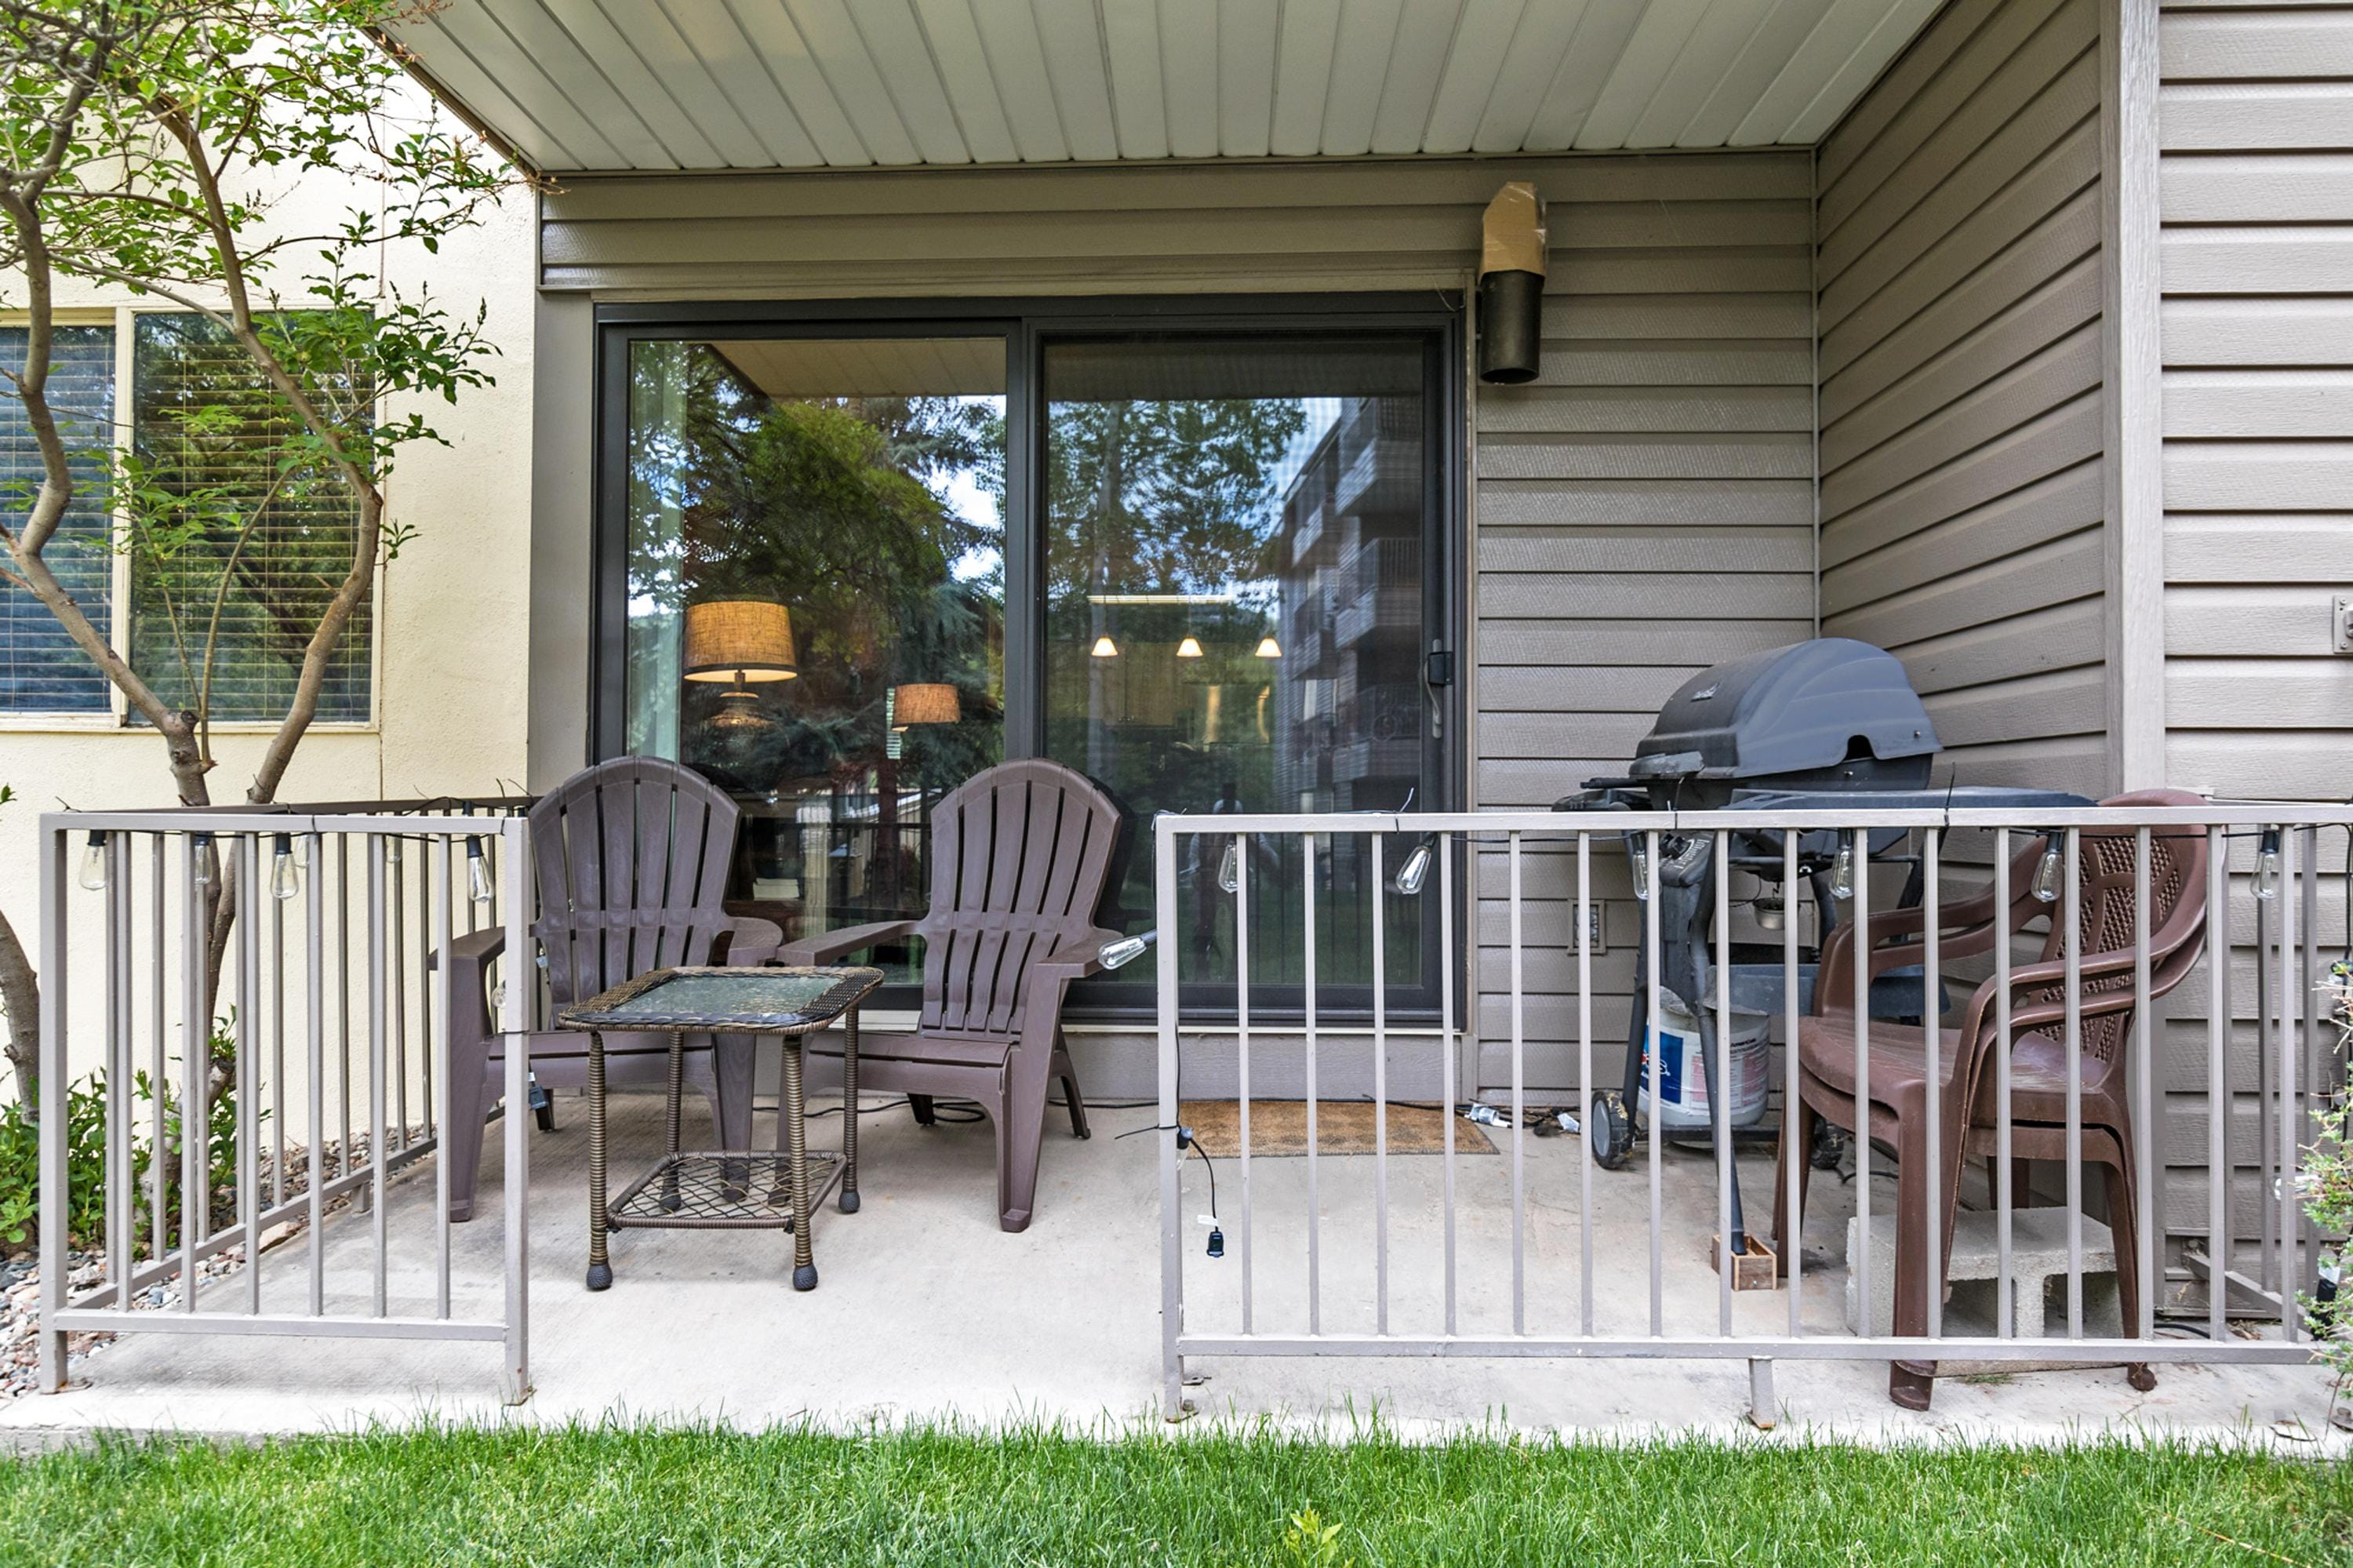 The back patio is ideal for a cup of coffee in the morning, or an evening barbecue.